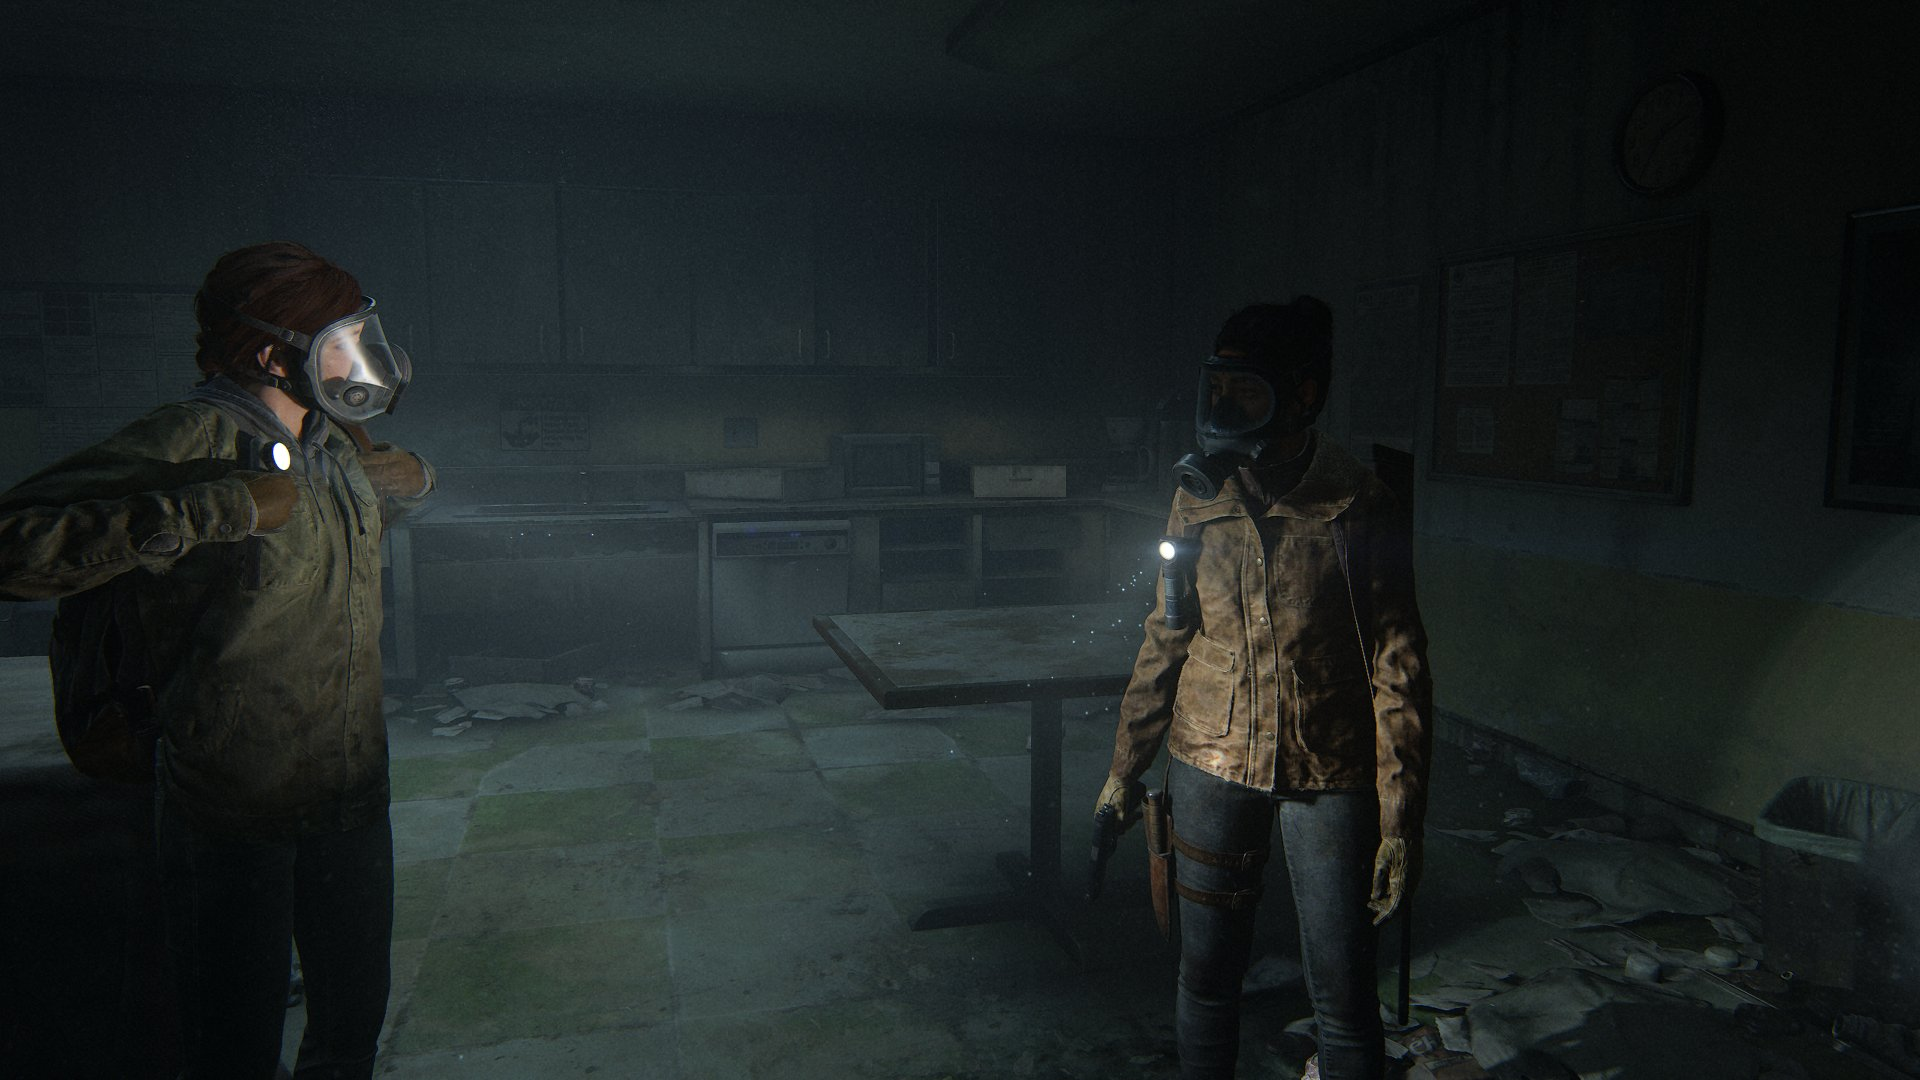 The Last of Us 2 has a pacing problem [Spoiler Free]